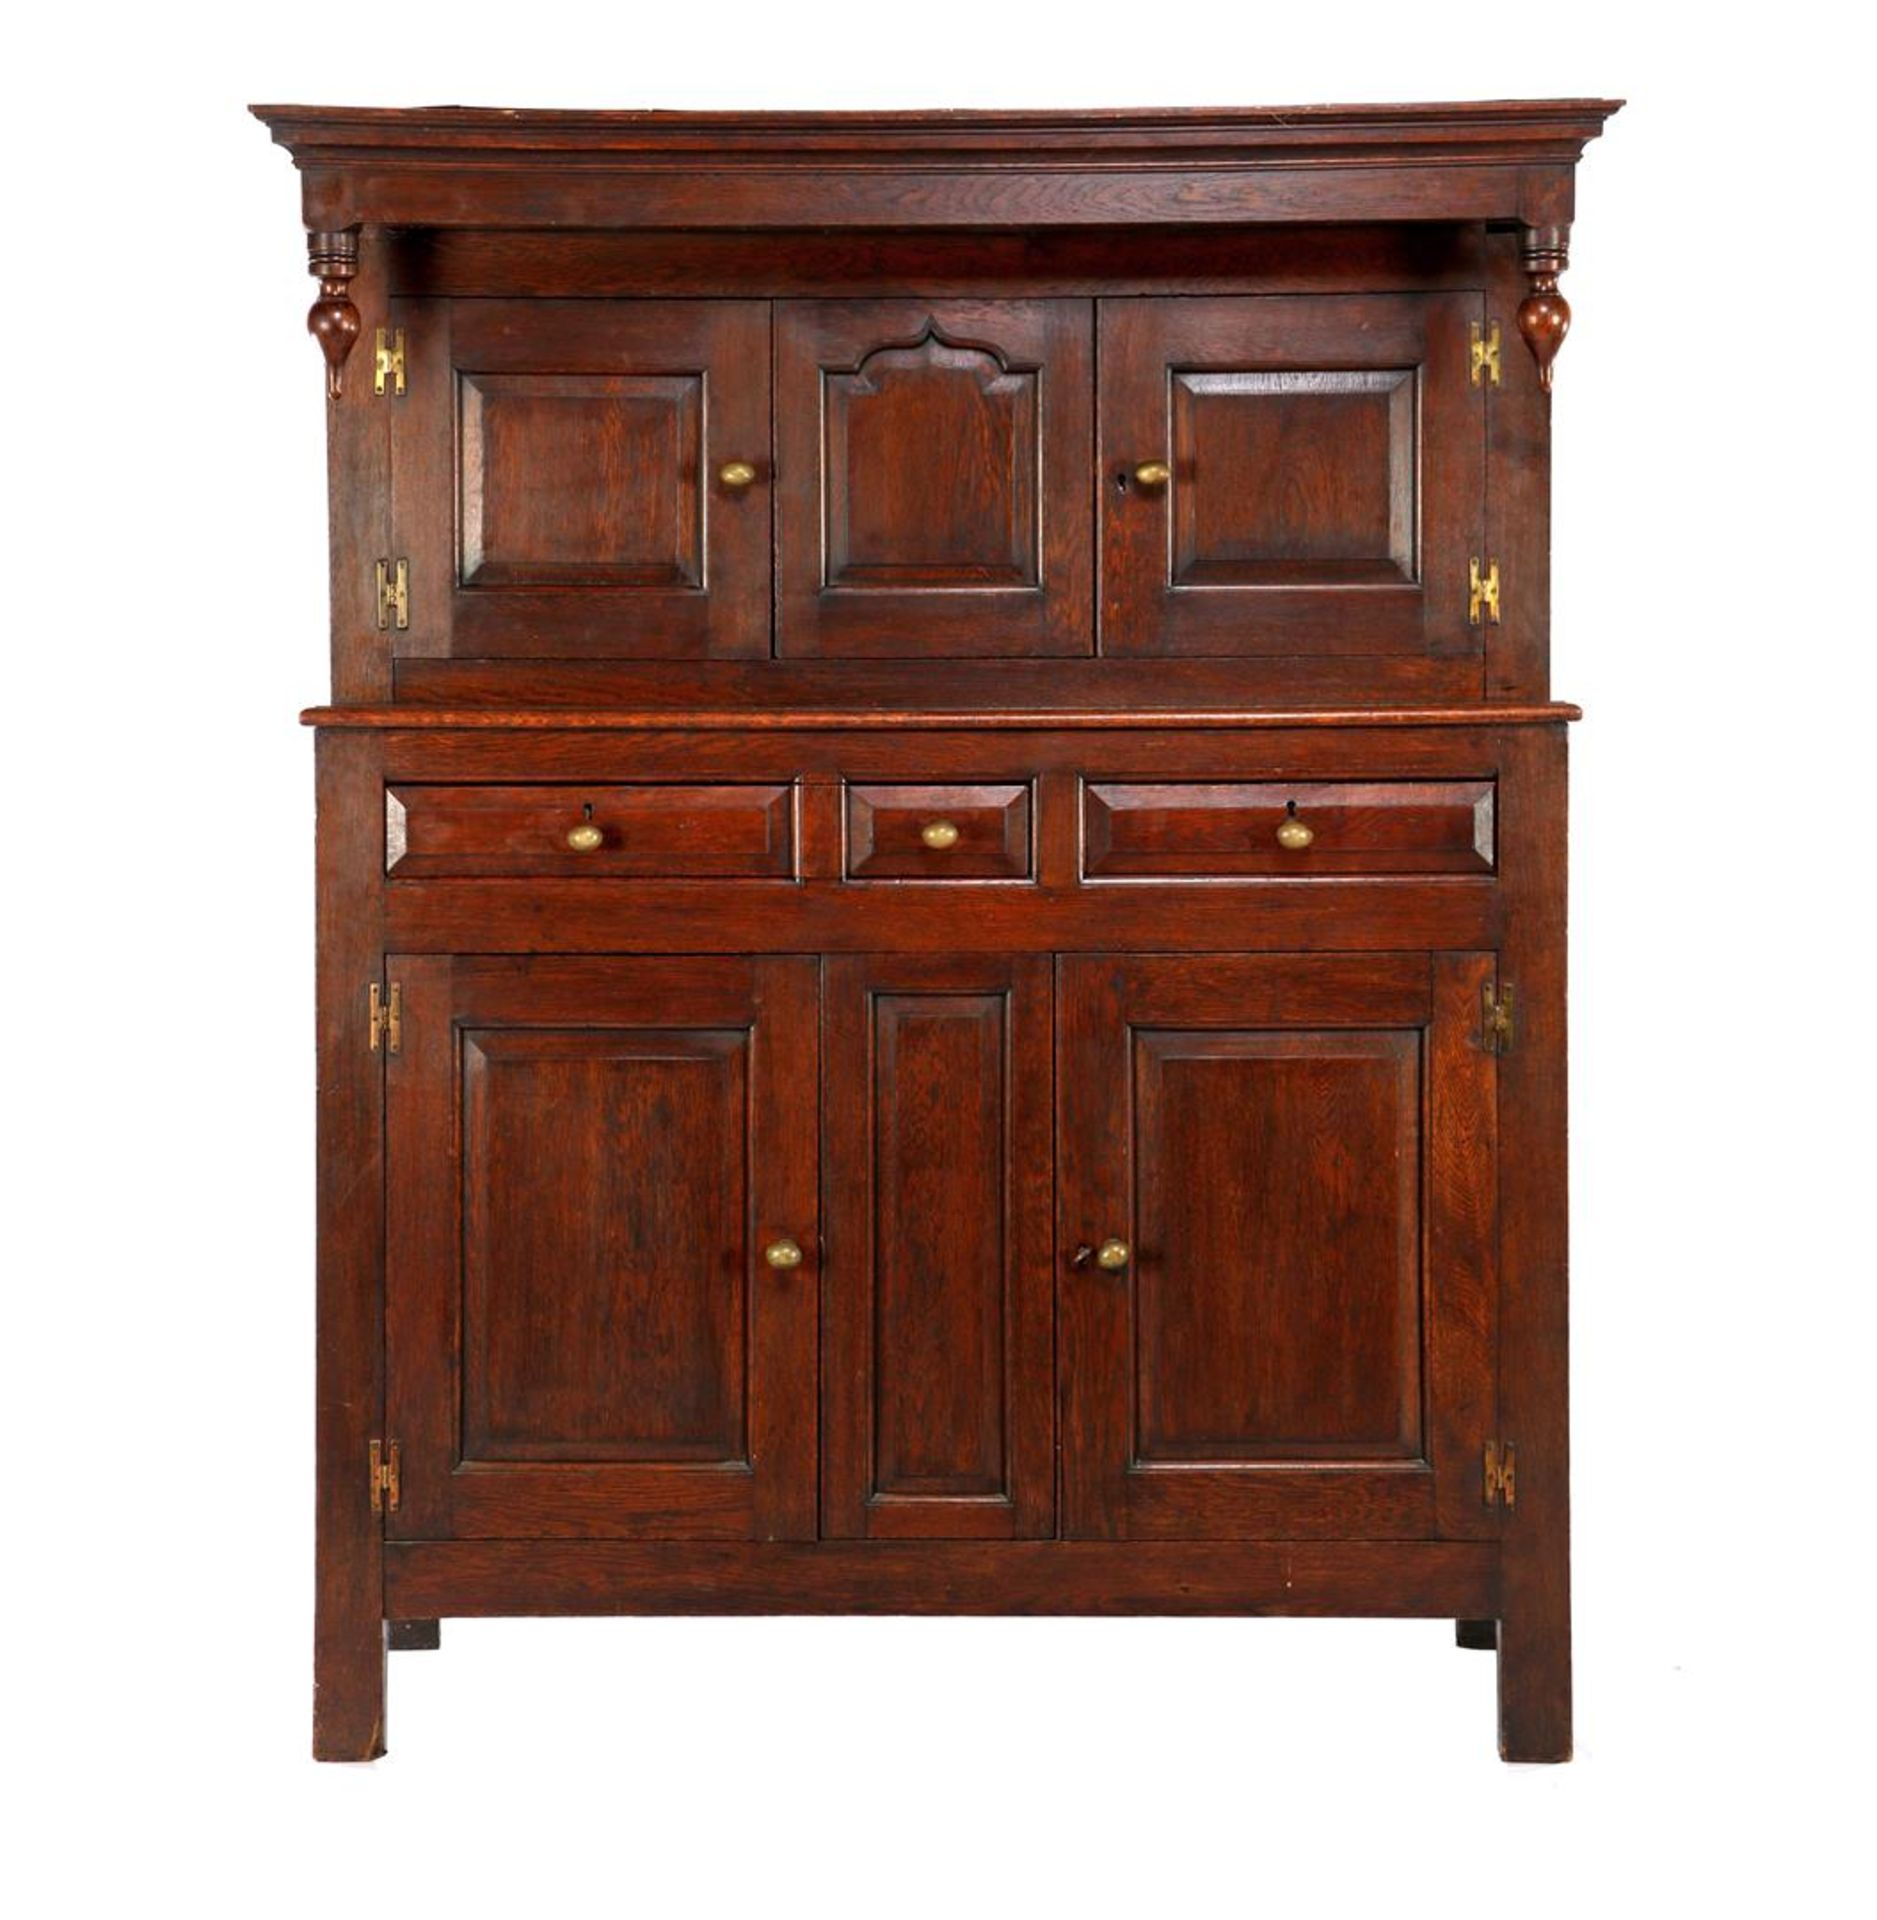 Oak English 2-part cabinet with 3-door base cabinet